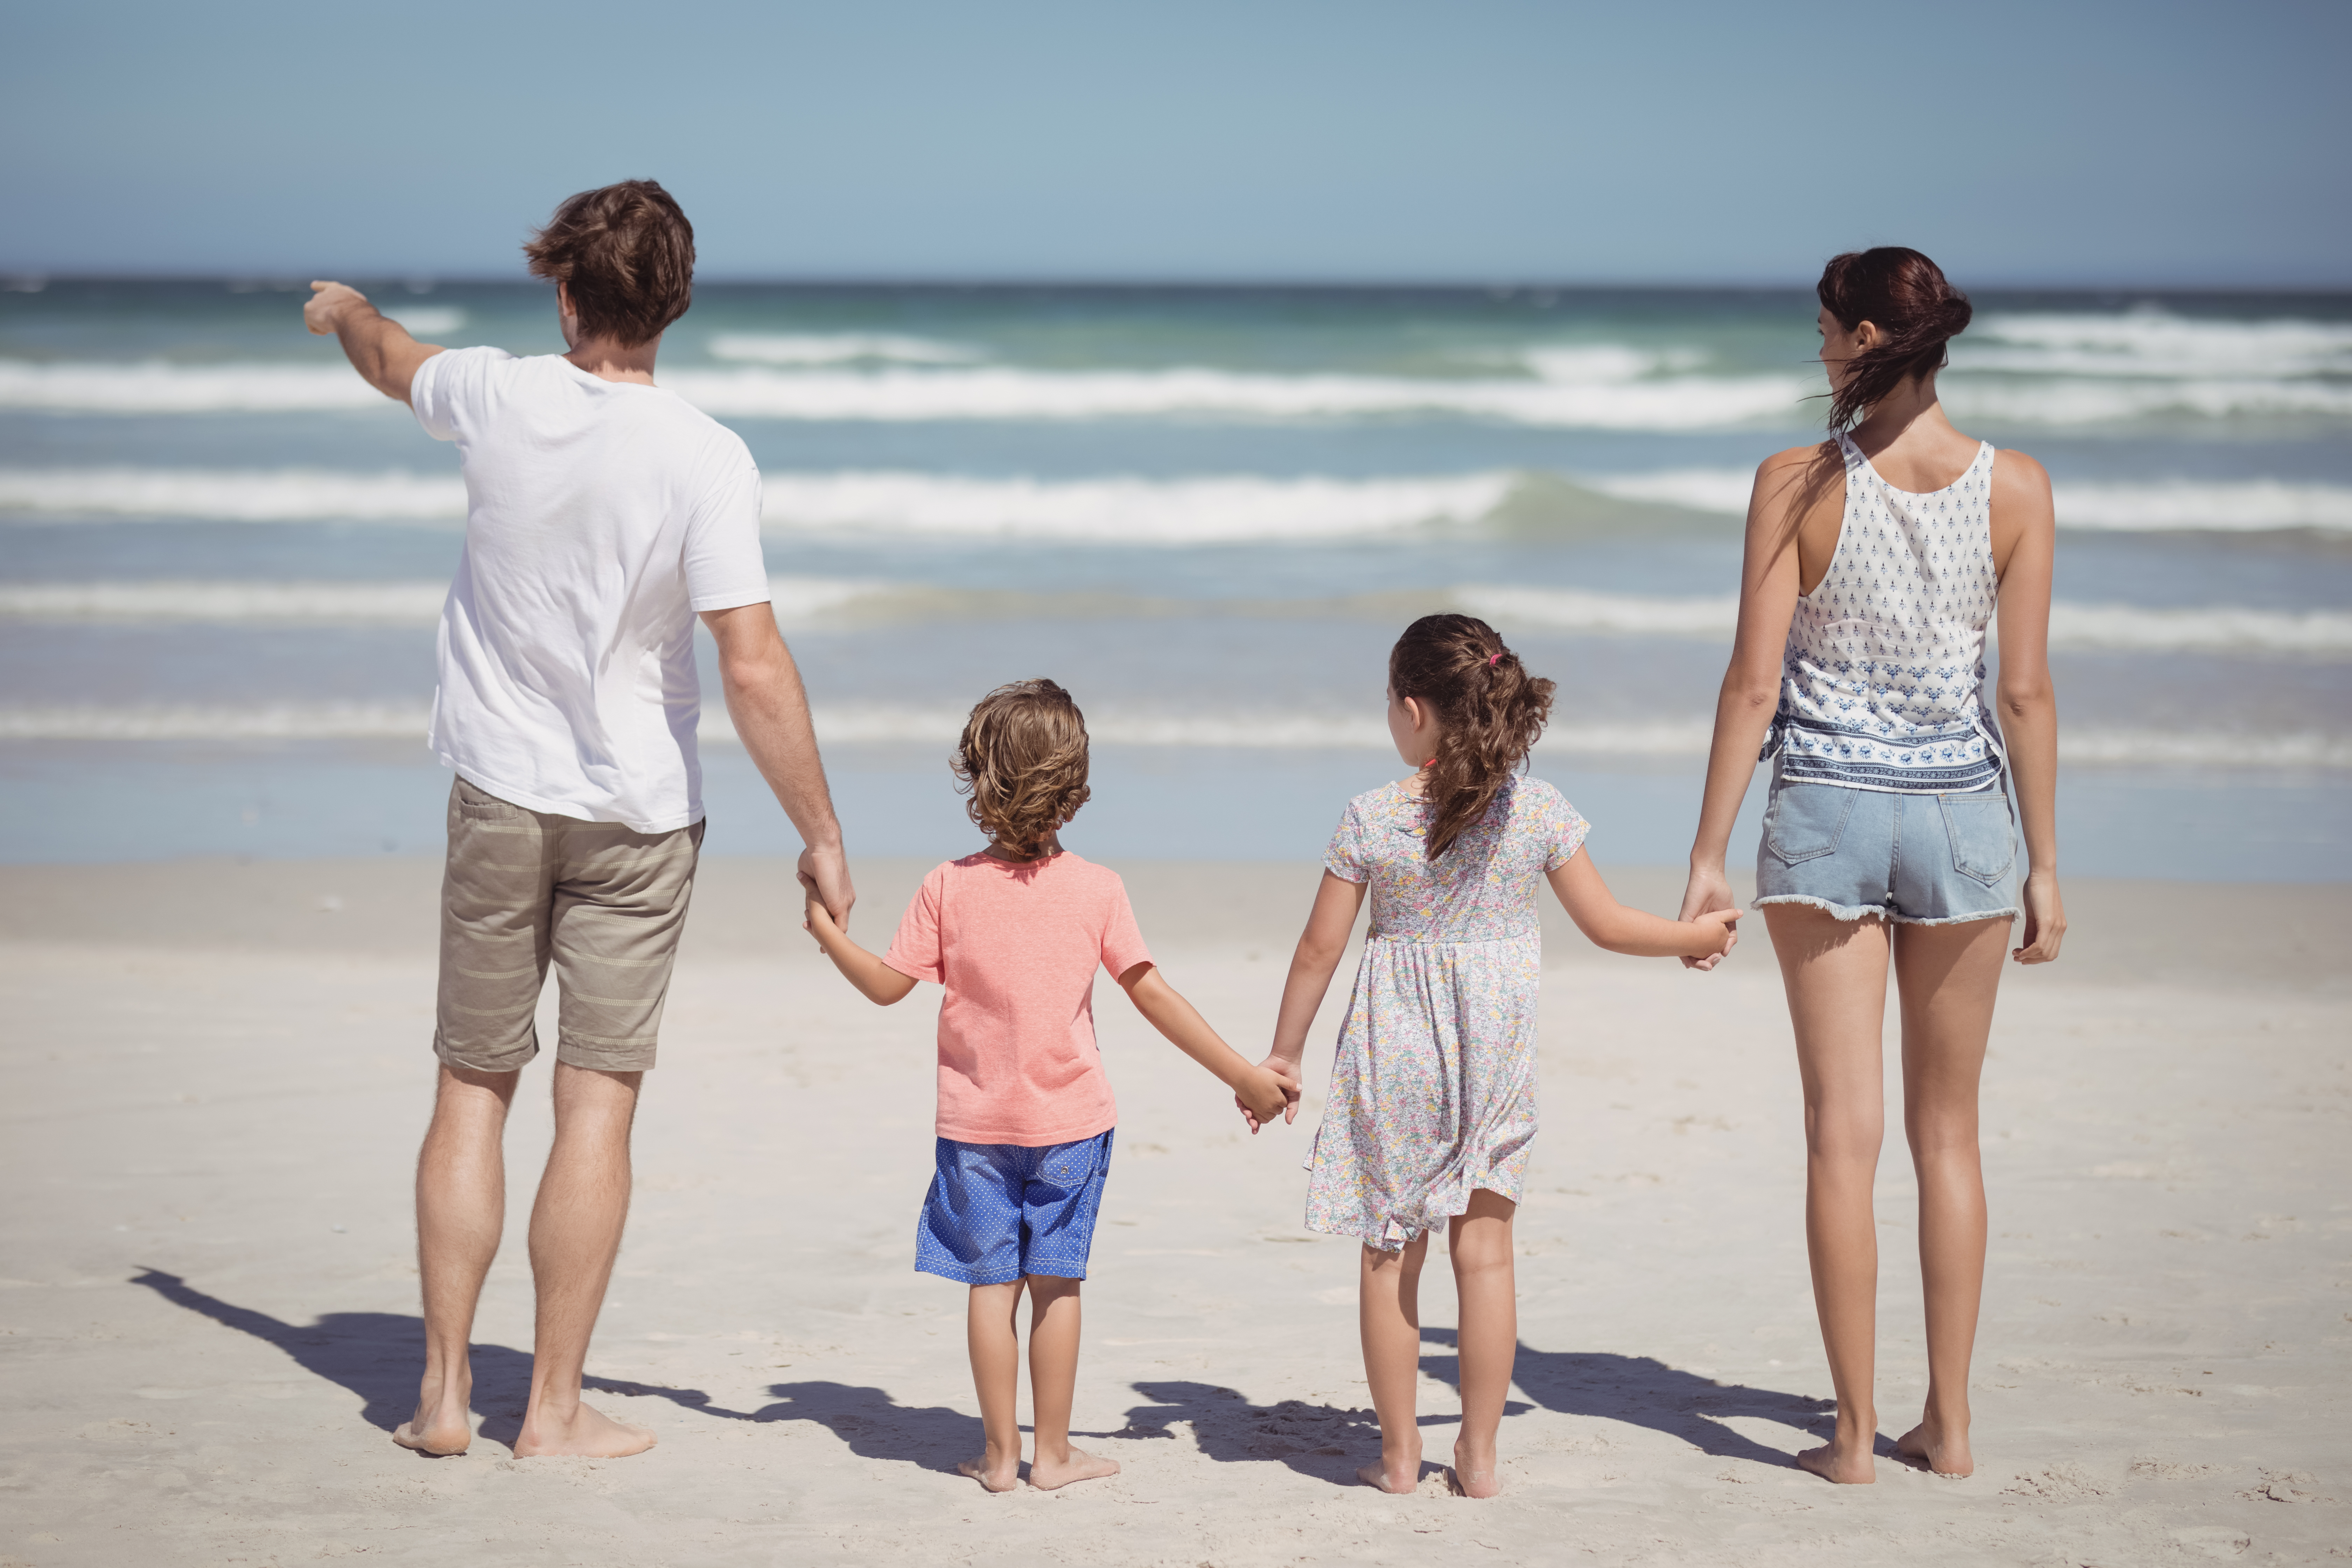 Adoption in Virginia is similar to adoption in any other state, but that doesn't make the process any simpler. Here are some tips.